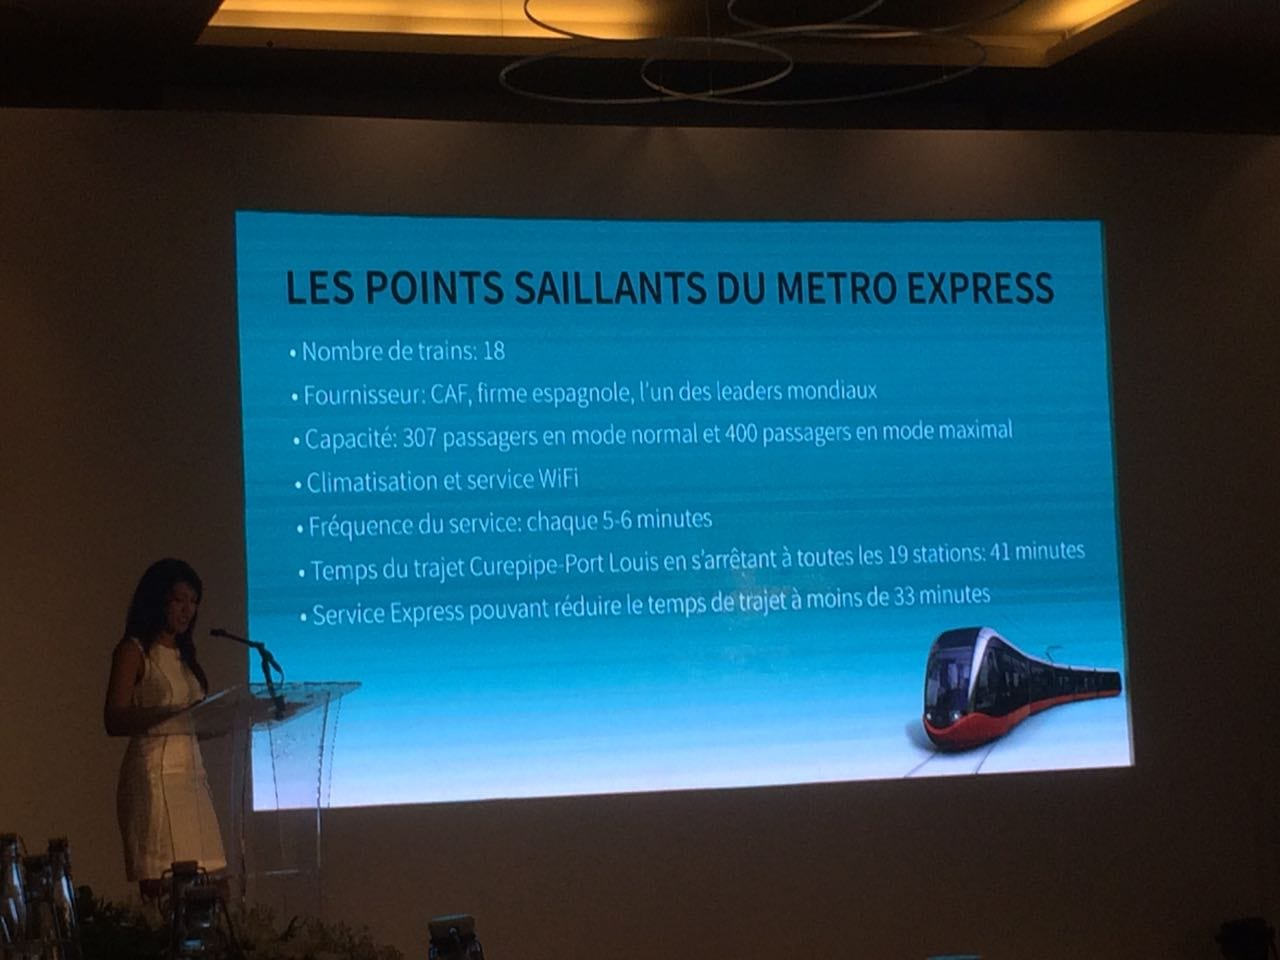 Metro Express - les points saillants 2